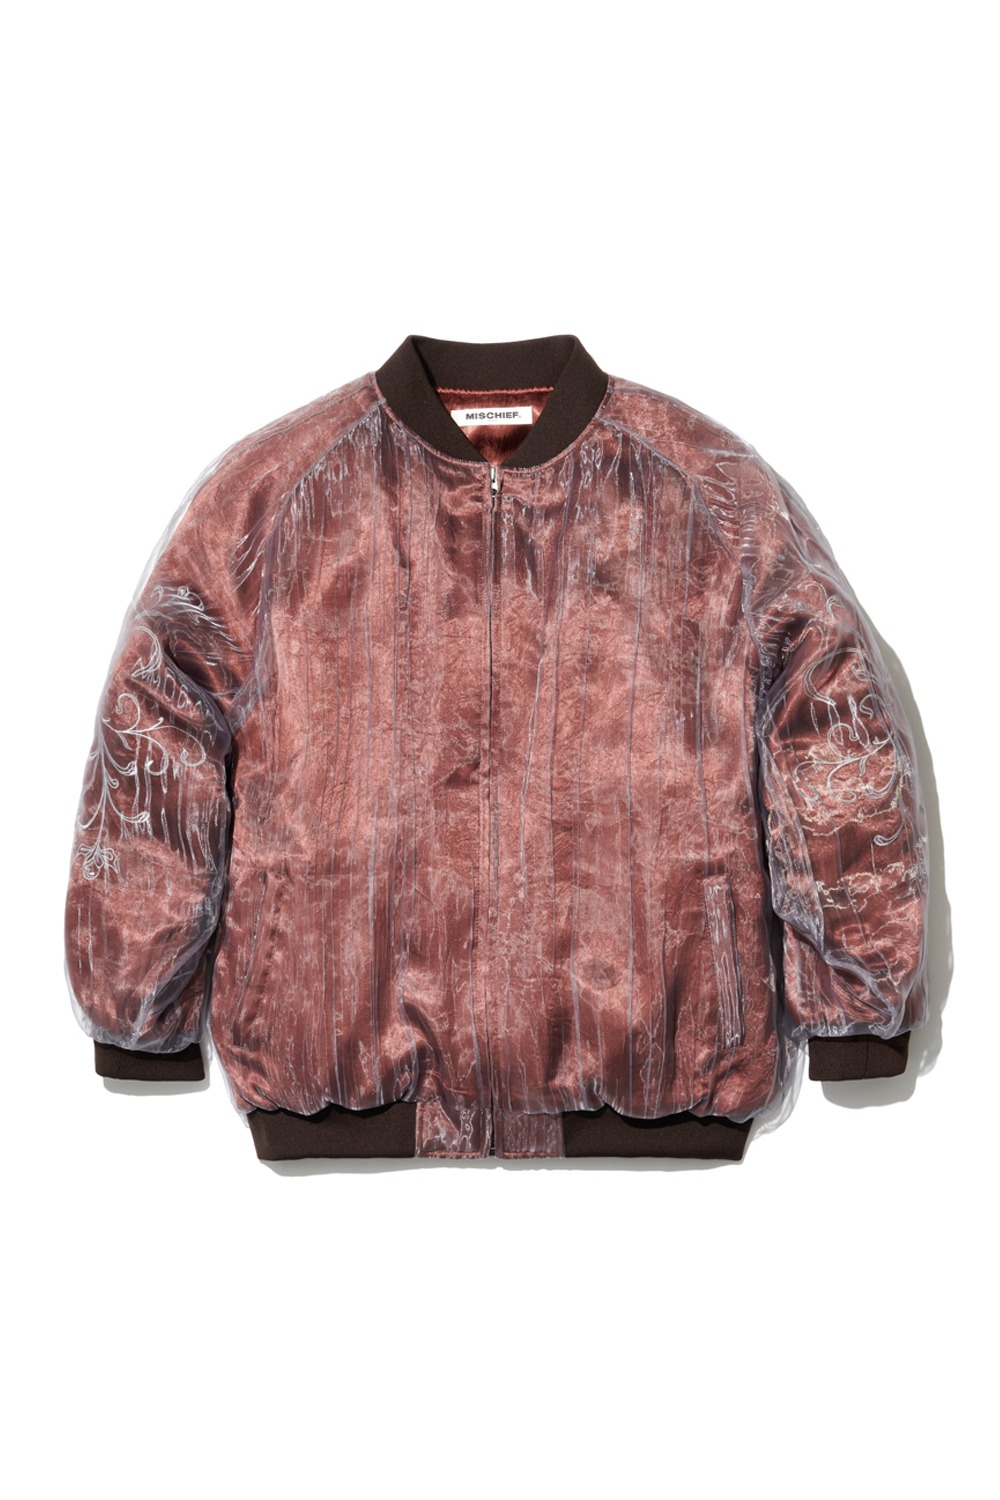 PROJECT MAGO_ORGANZA LAYERED BOMBER JACKET_RED BROWN